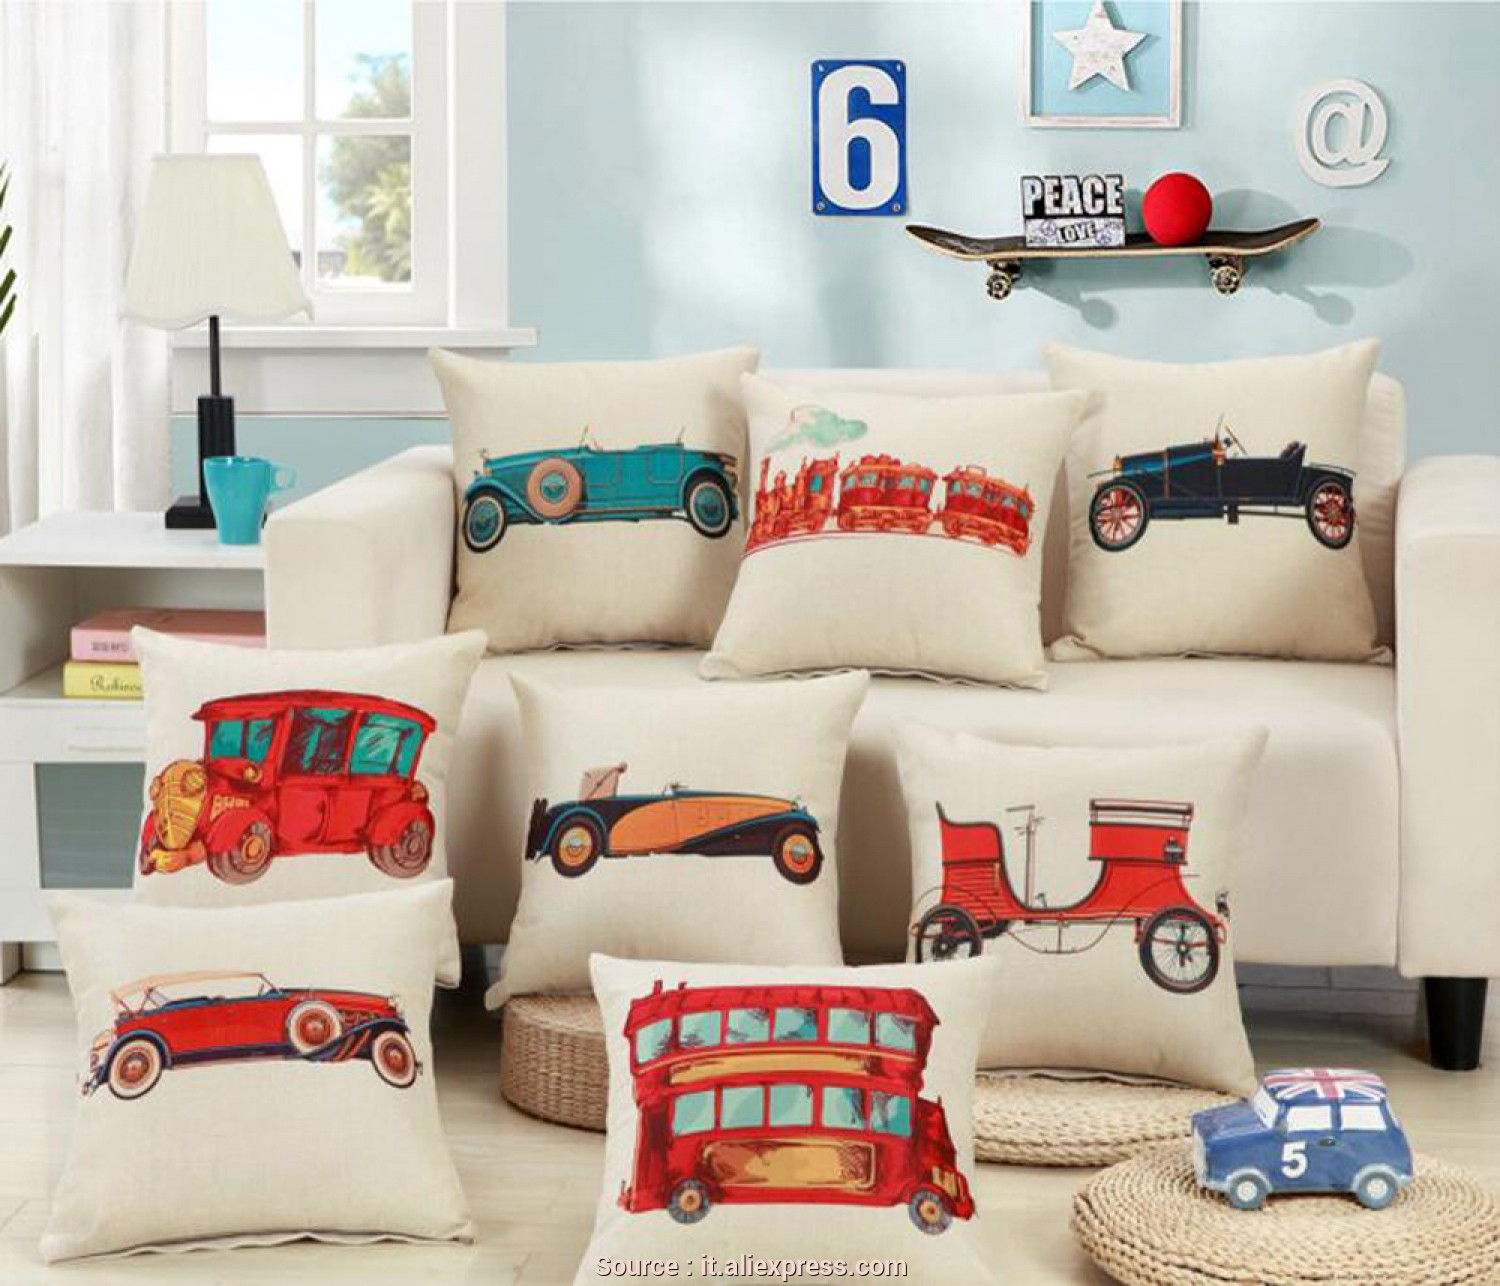 Cuscini, Divano Bambini, Favoloso Treno Auto, Cuscino, I Bambini Cuscino Decorativo Covers, Divano Sedia Auto Home Decor Pillow Case Cuscino Di Tiro In Treno Auto, Cuscino, I